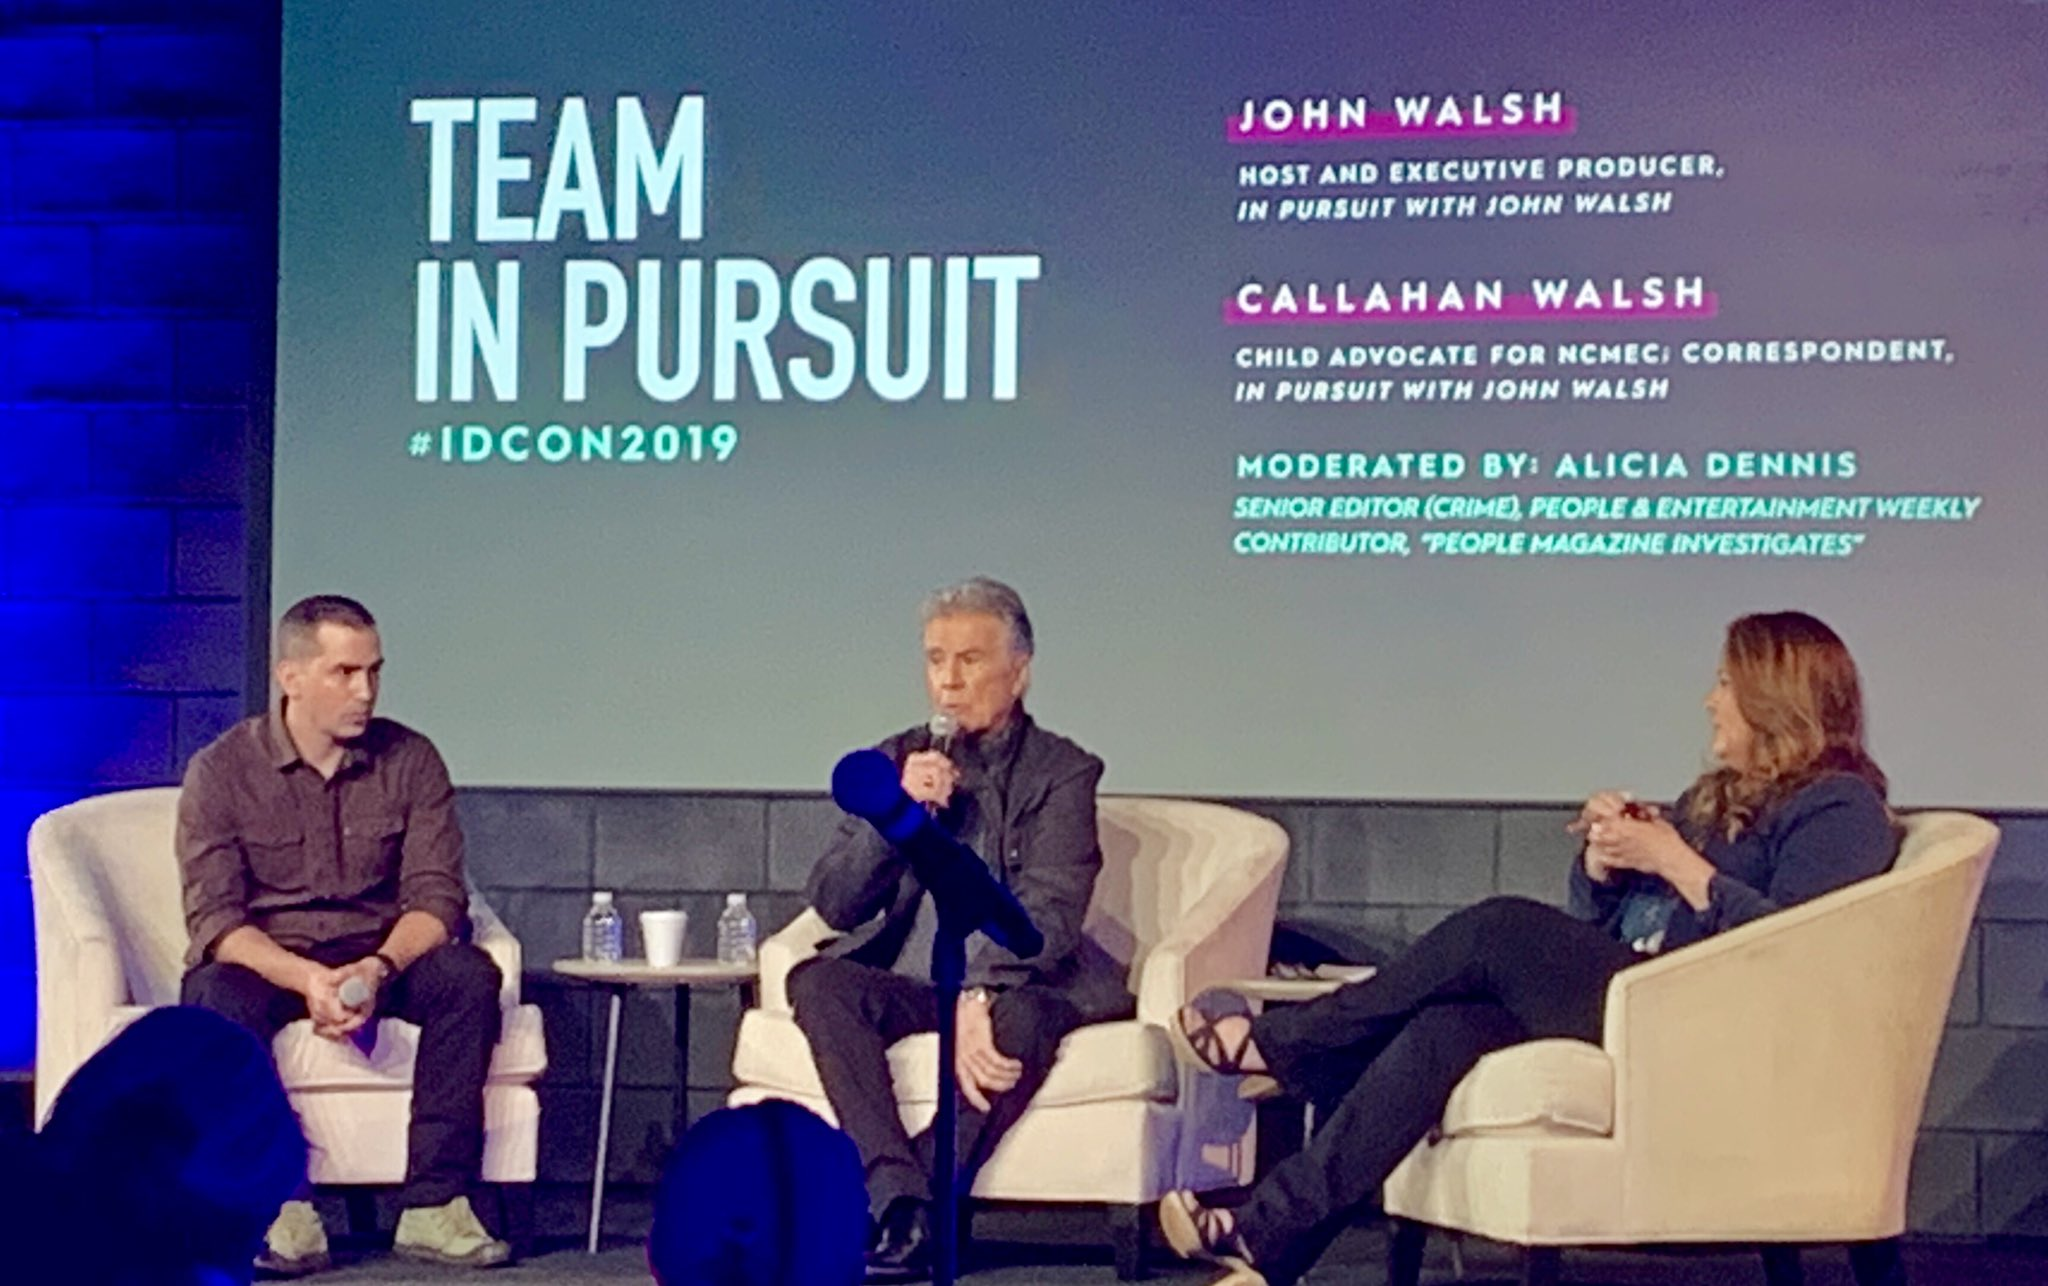 Callahan Walsh On Twitter It Was Great Seeing All The In Pursuit Fans At Idcon2019 Thanks For All The Support We Will Have Some Exciting News To Share Soon Teaminpursuit Discoveryid Https T Co Sfnains29o From wikipedia, the free encyclopedia. twitter